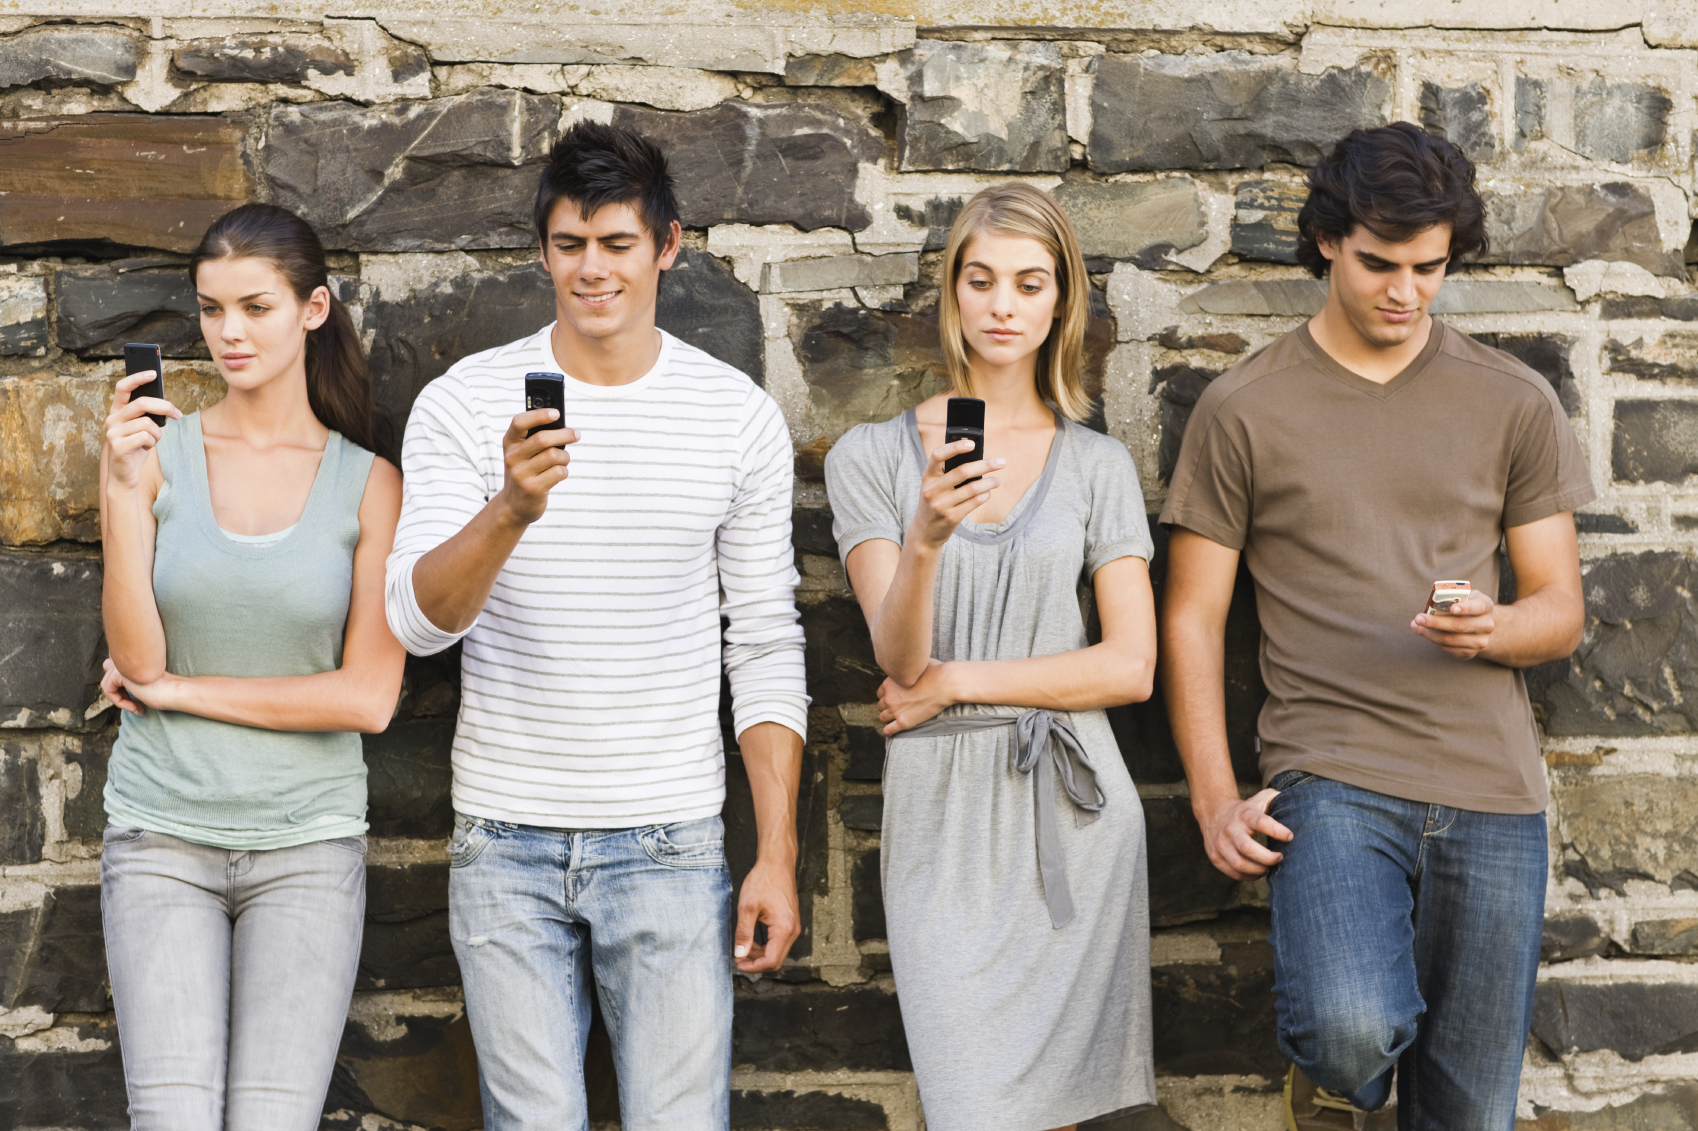 10 Texting Games To Play With Your Friends